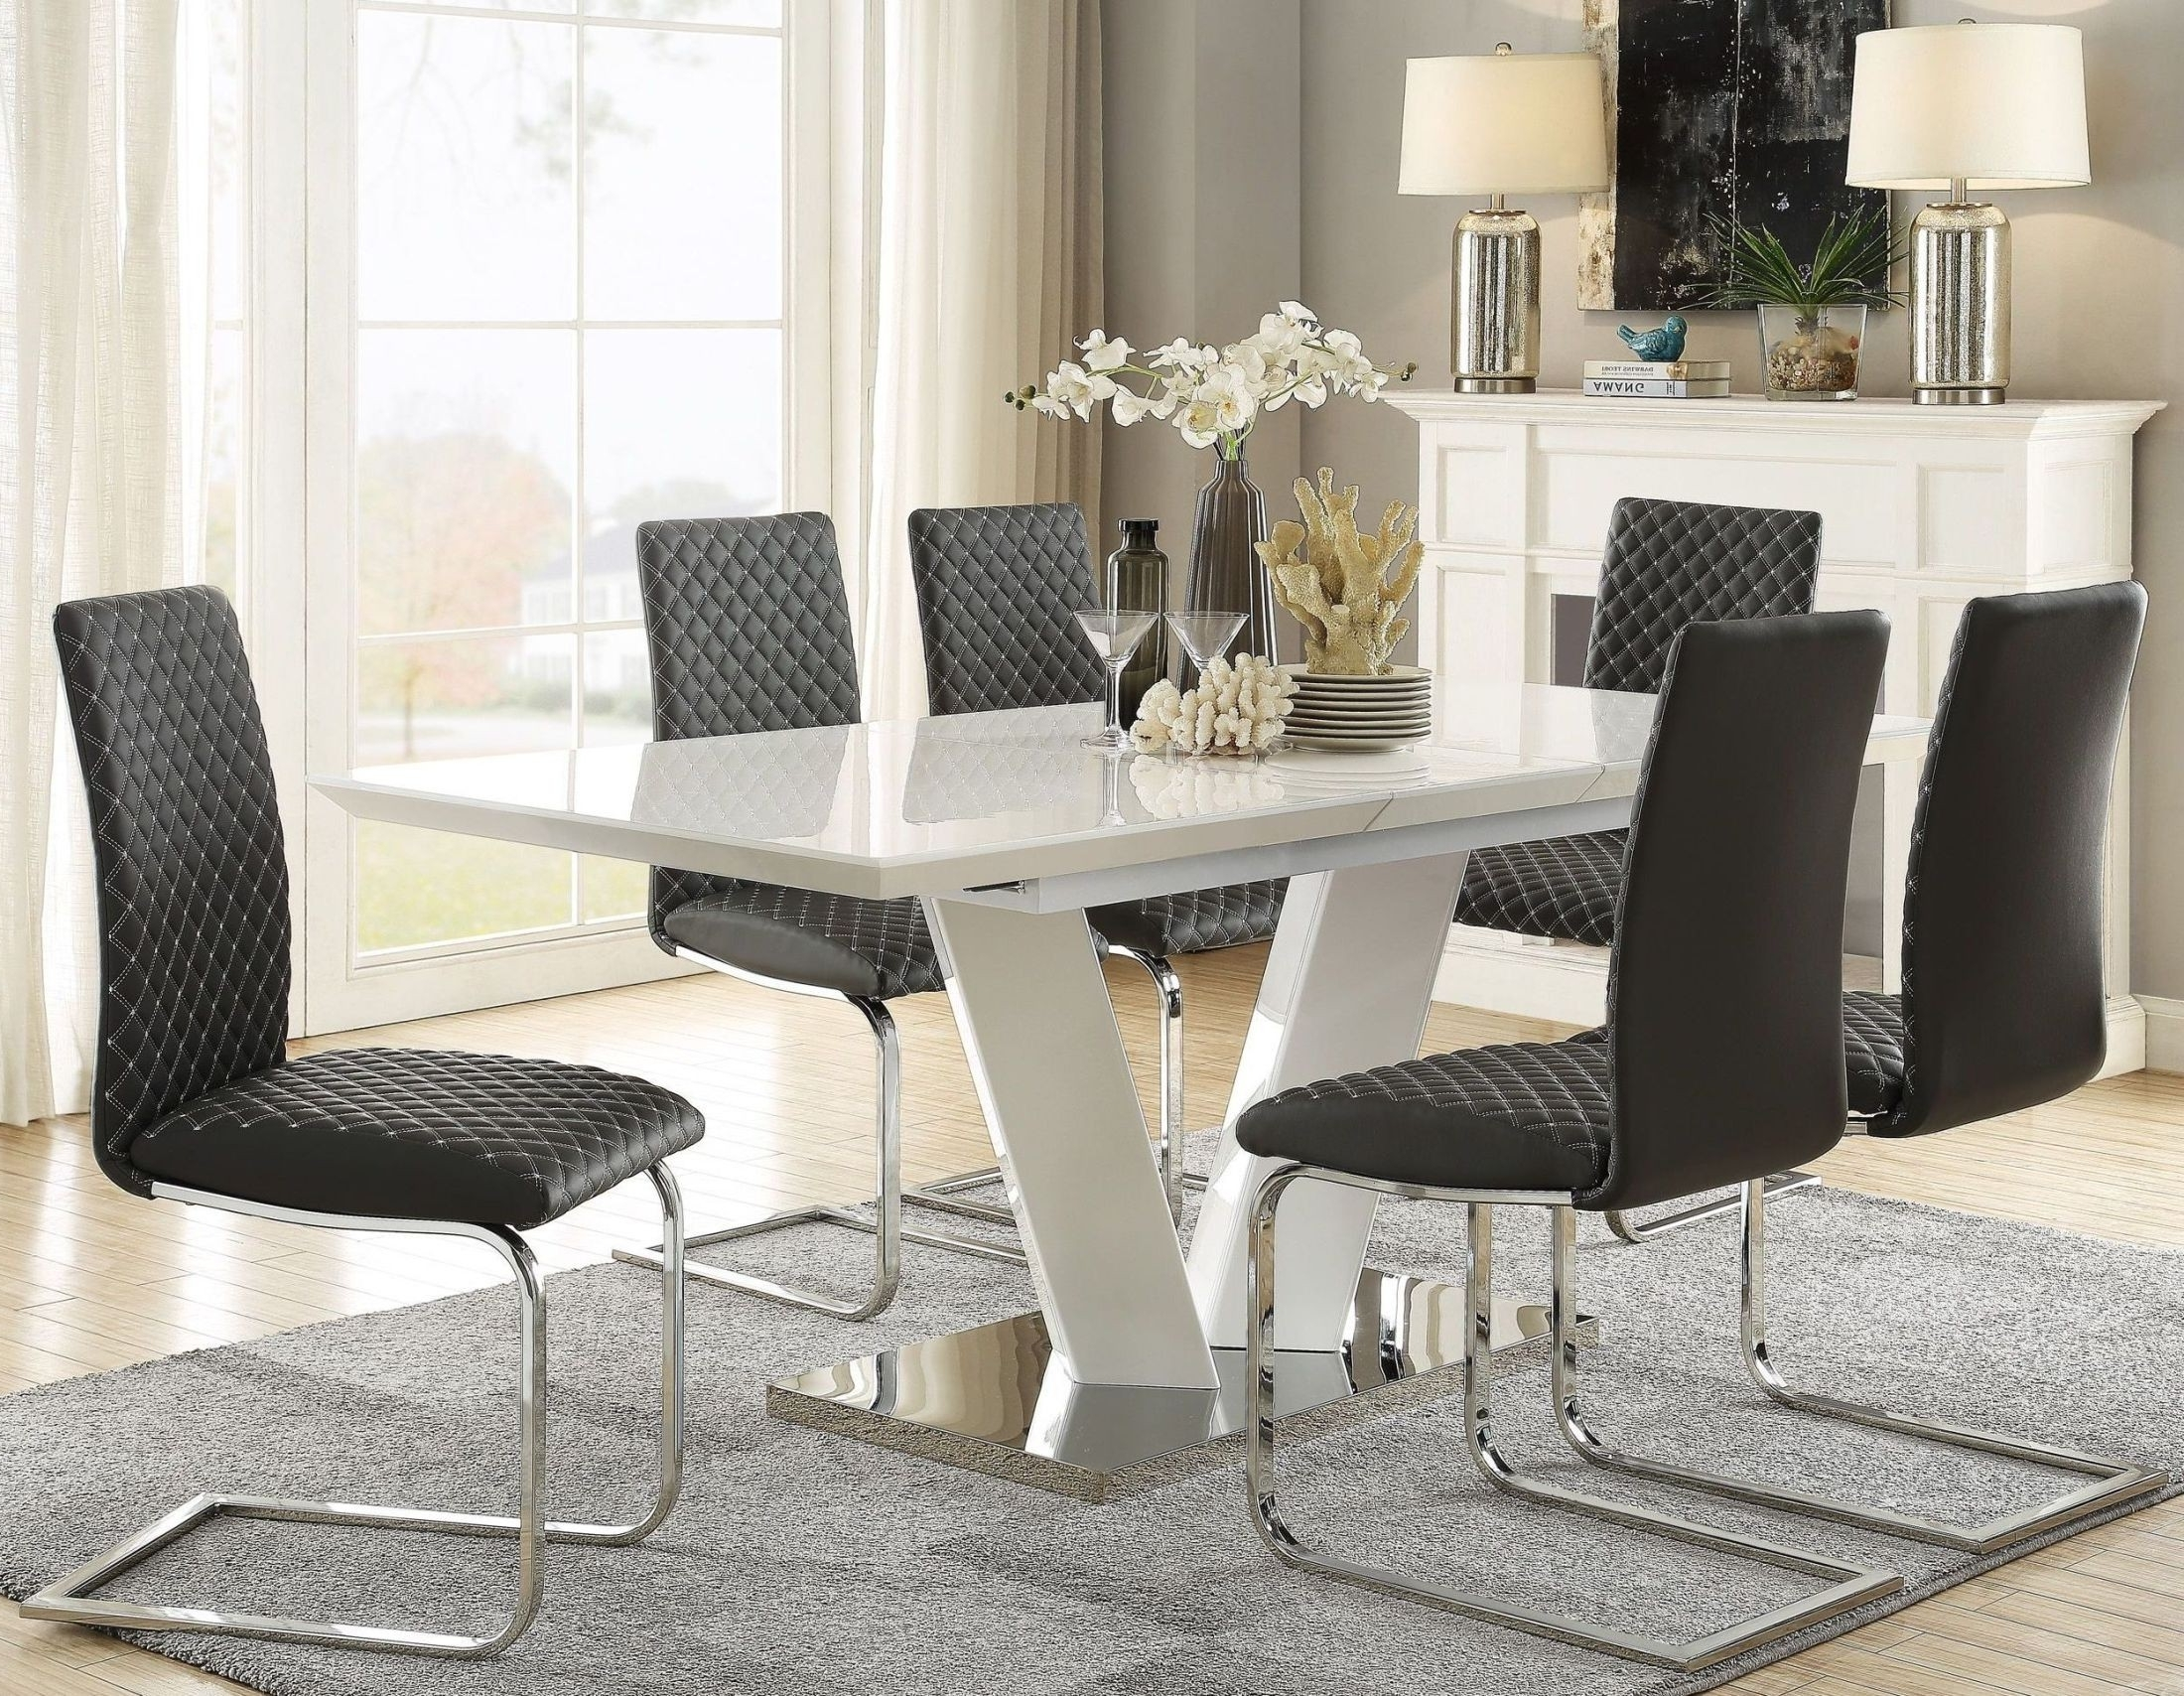 Homelegance Yannis White High Gloss Extendable Dining Table – Yannis Inside Best And Newest High Gloss Extendable Dining Tables (Gallery 25 of 25)